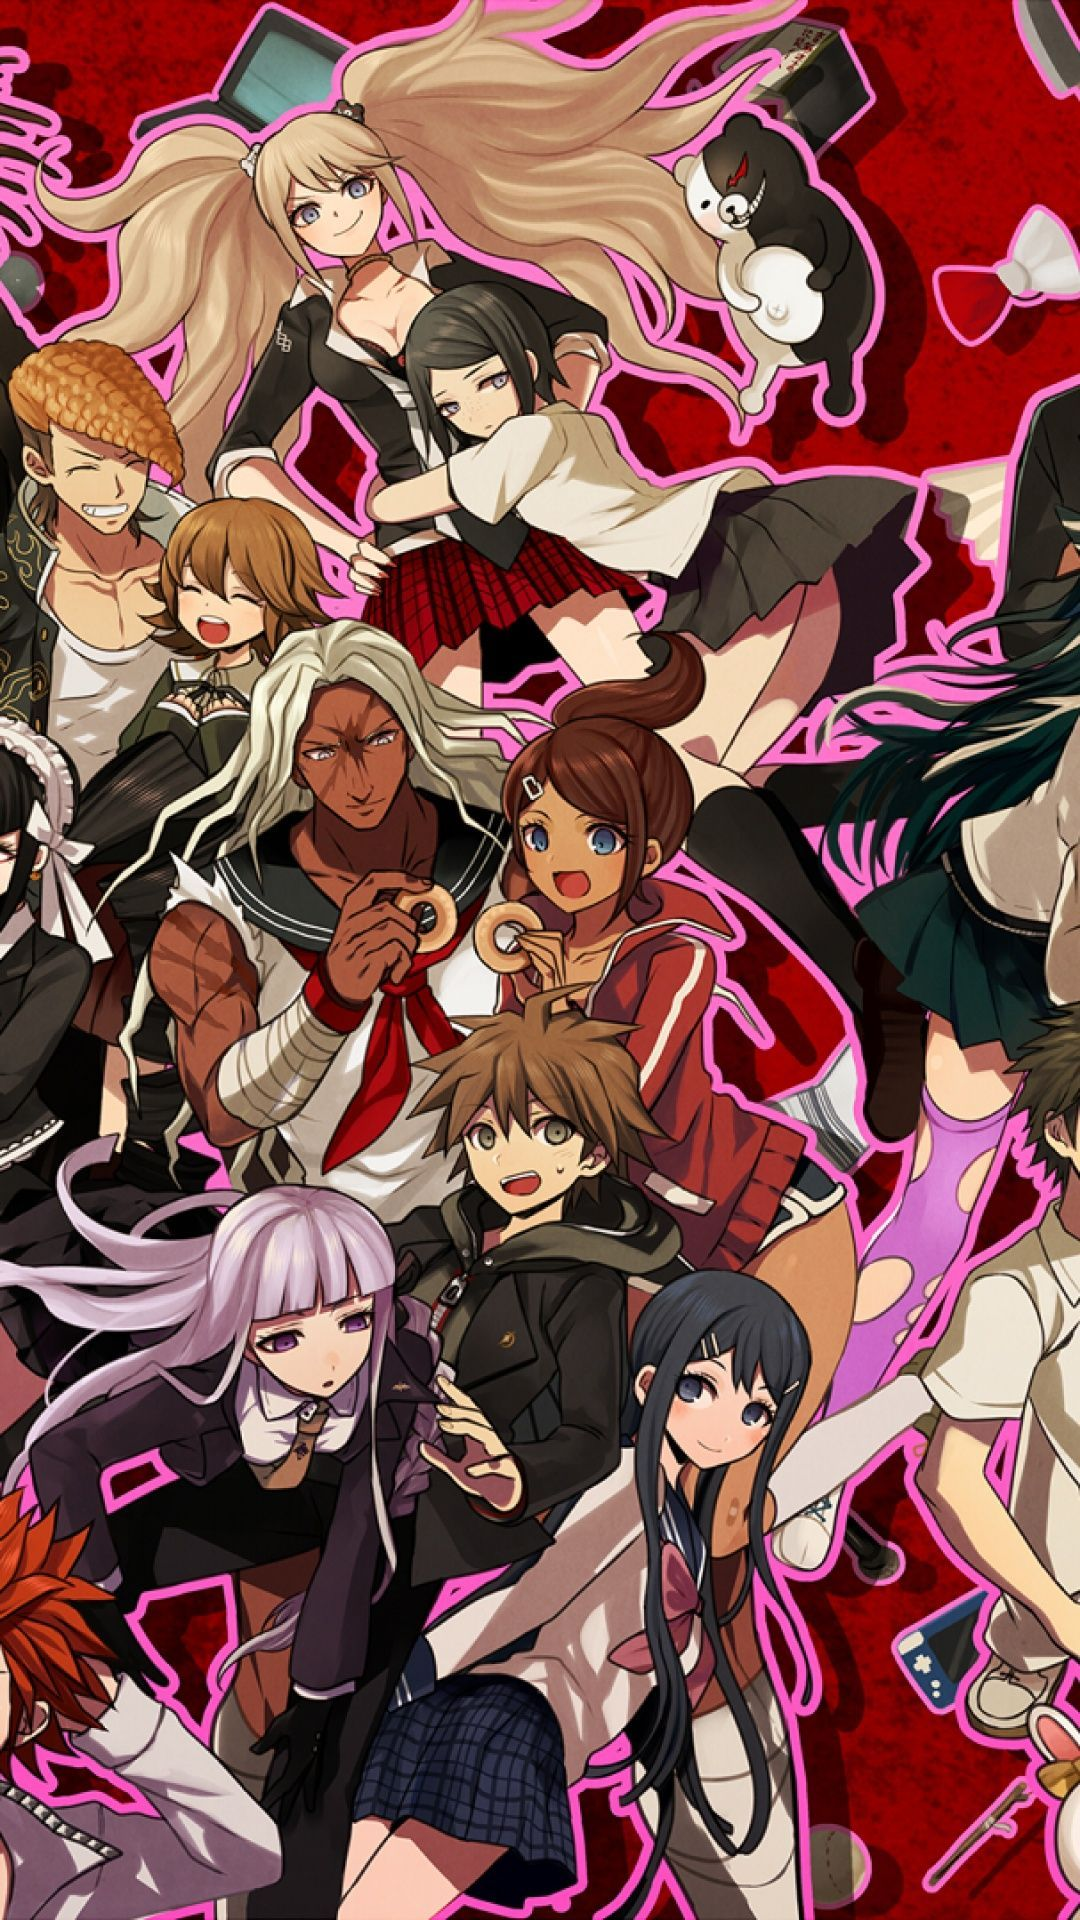 Danganronpa Wallpaper For Mobile Phone Tablet Desktop Computer And Other Devices Hd And 4k Wallpapers In 2021 Iphone Wallpaper Danganronpa Wallpaper Danganronpa anime iphone wallpaper